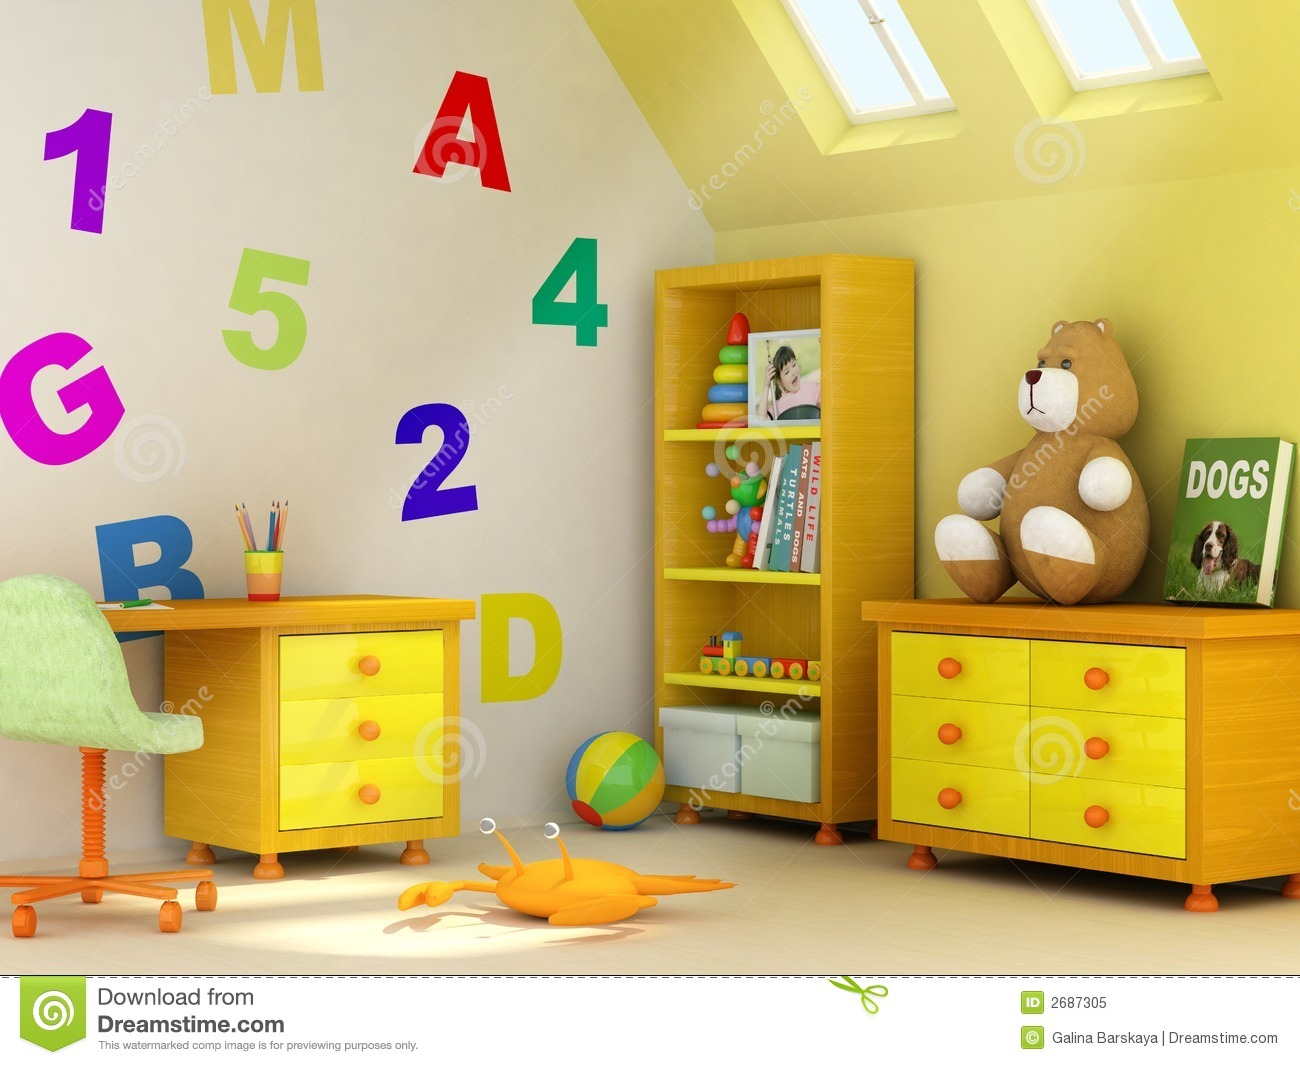 children's room royalty free stock images - image: 7156689